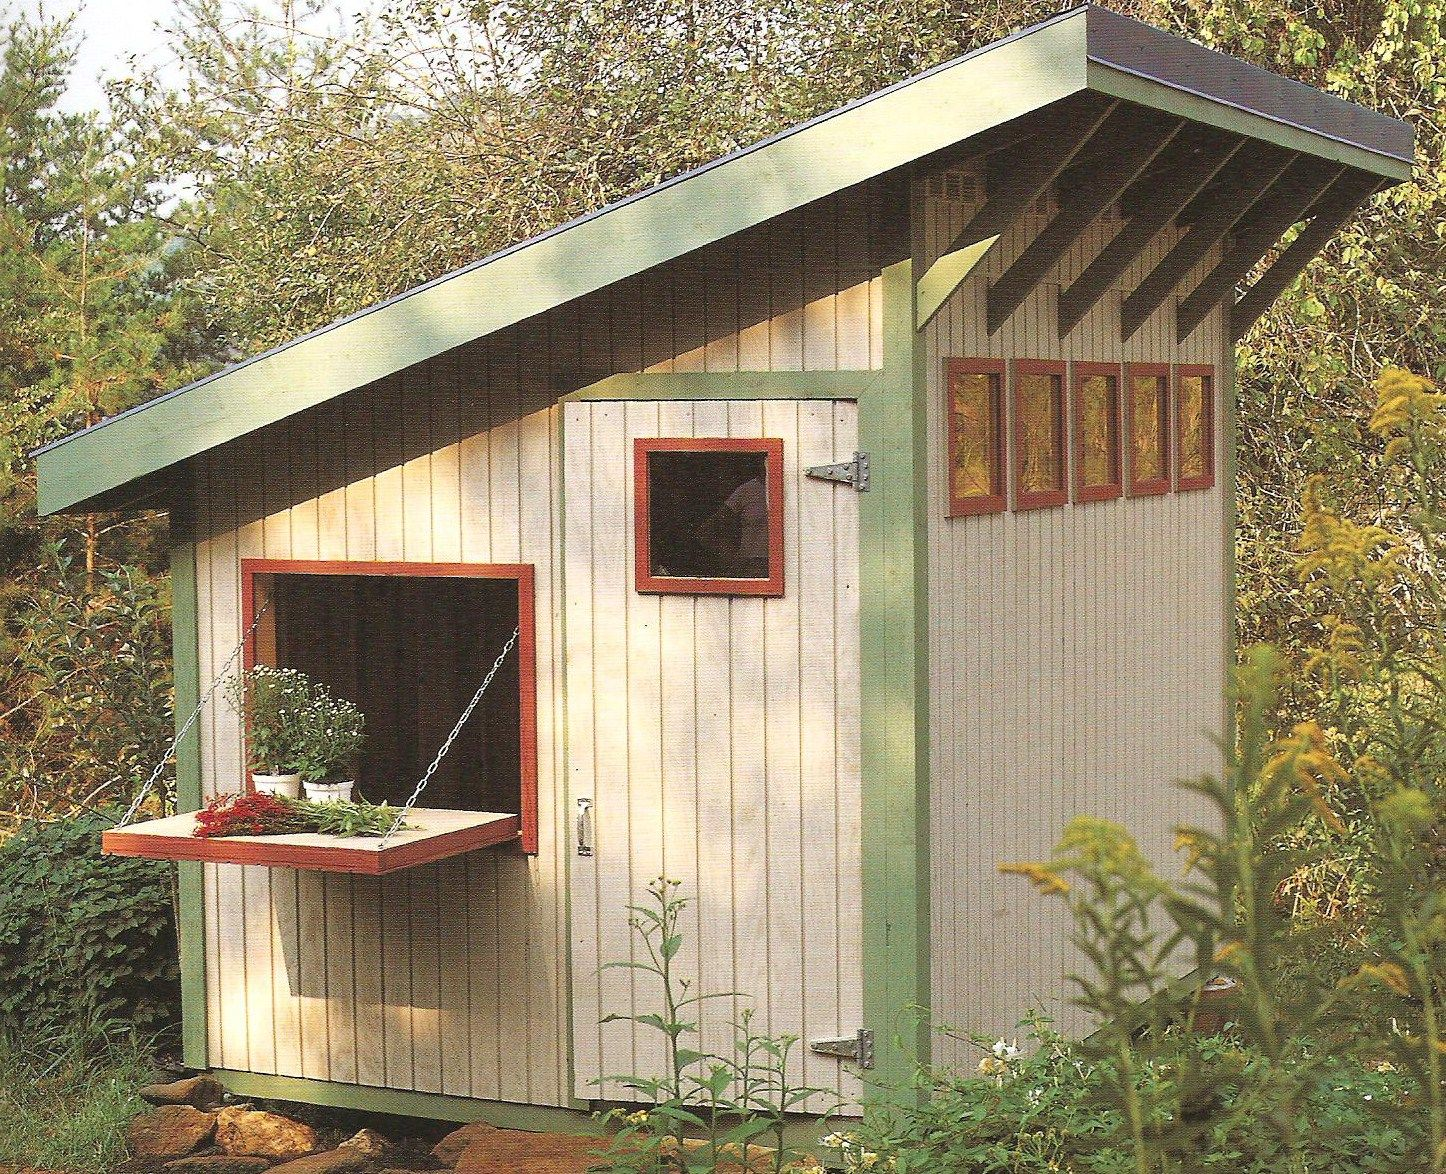 English garden sheds plans for chellsia Barn plans and outbuildings